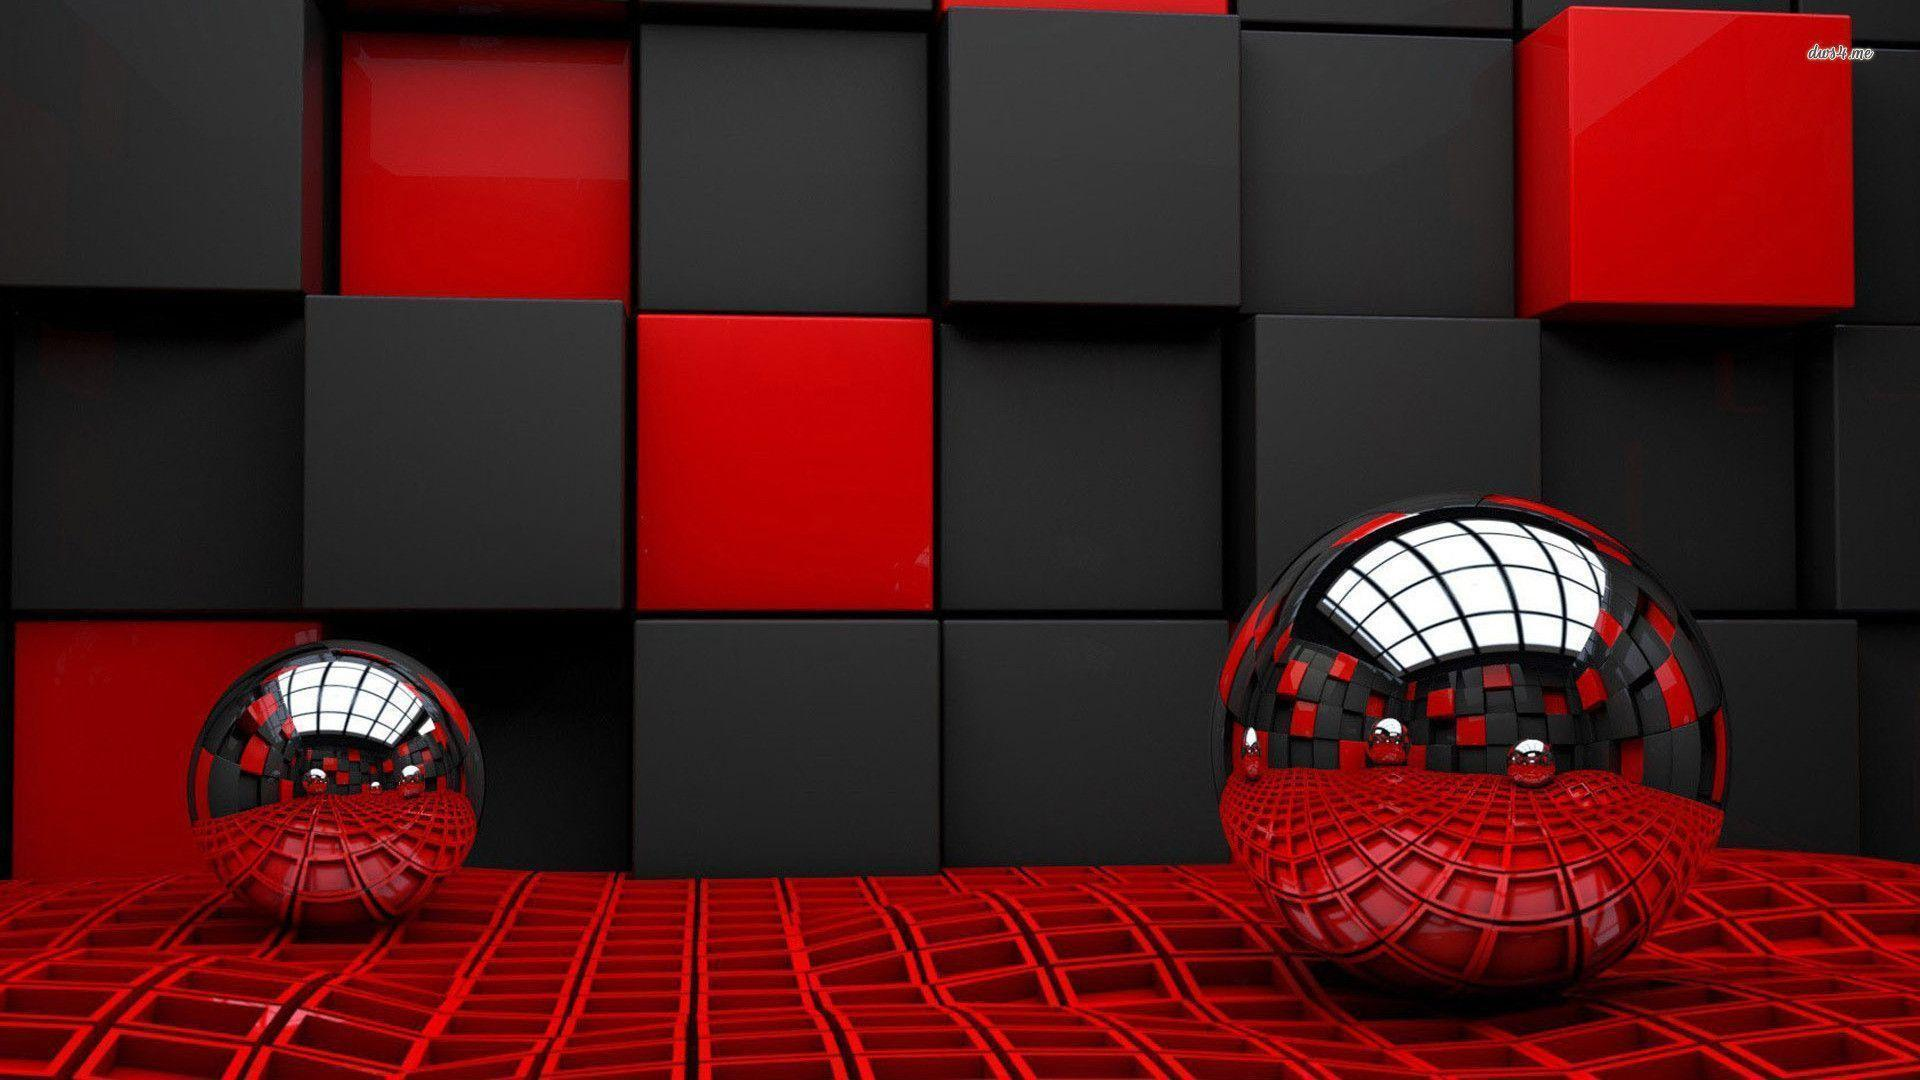 Metallic spheres reflecting the cube room wallpapers